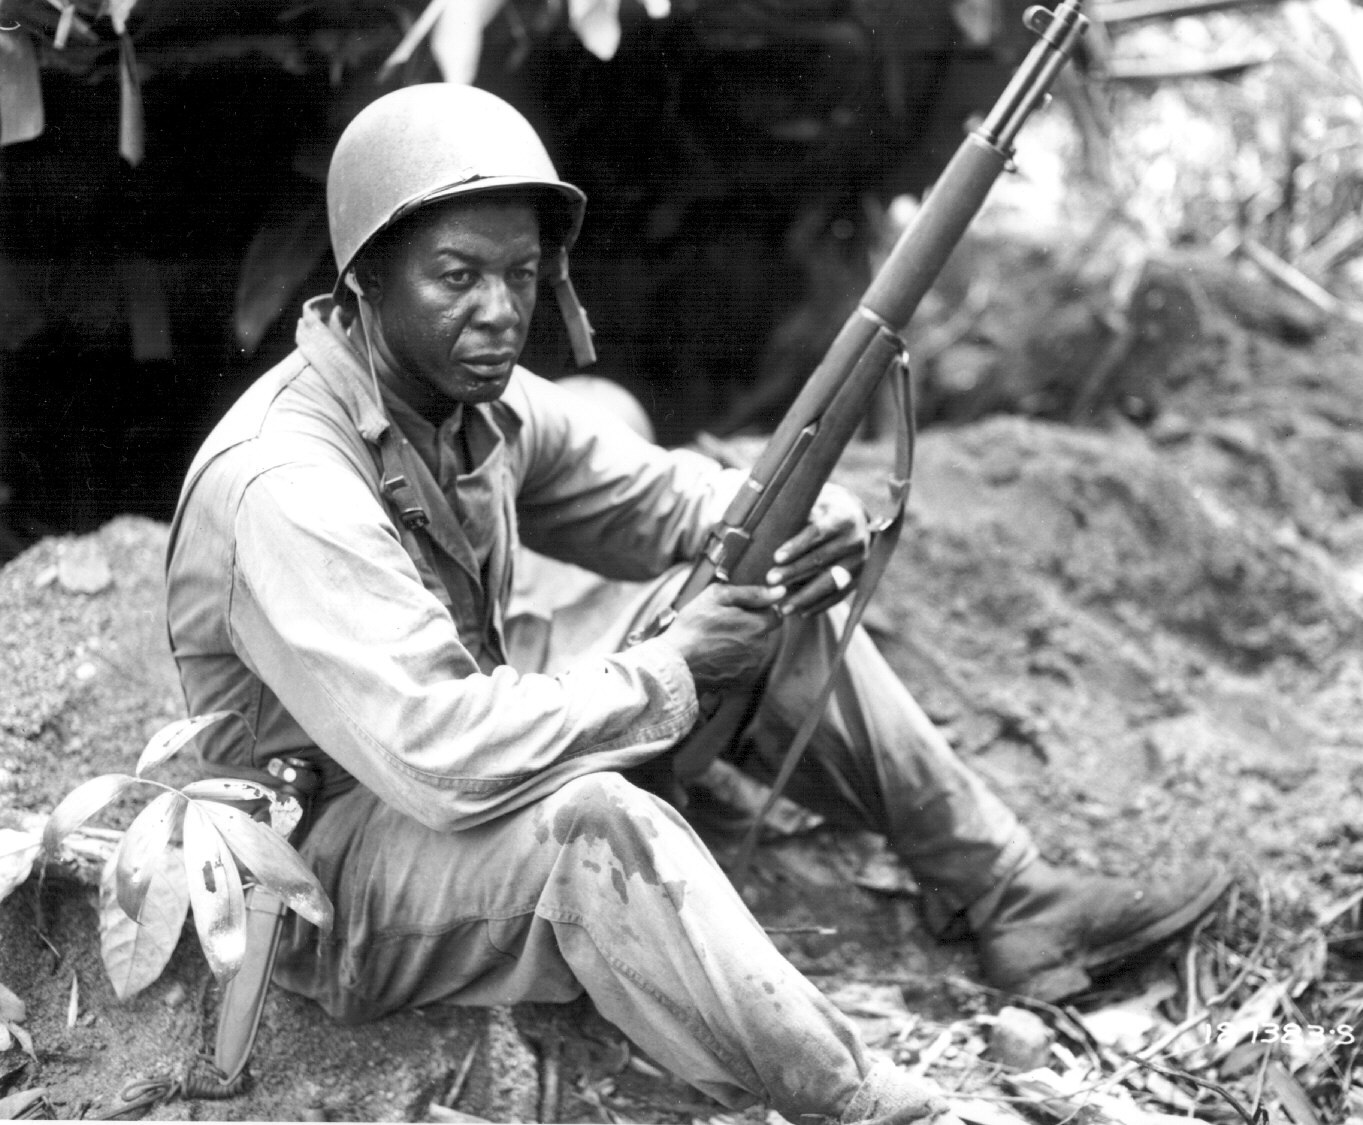 an analysis of the african soldiers after the world war two and the chase after the american dream Mystery surrounds japanese men, both in their 80s, who say they have been in hiding since second world war.